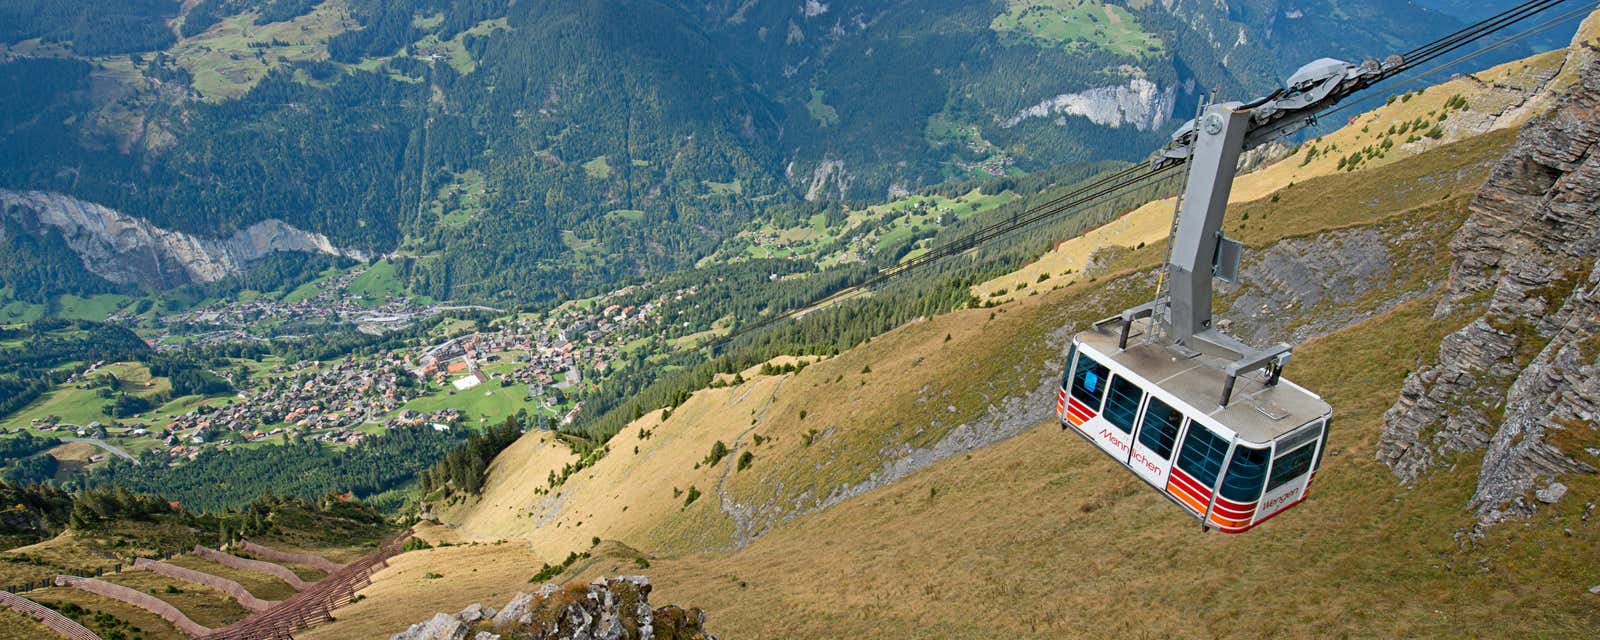 A cable car above Lauterbrunnen Valley, Switzerland.